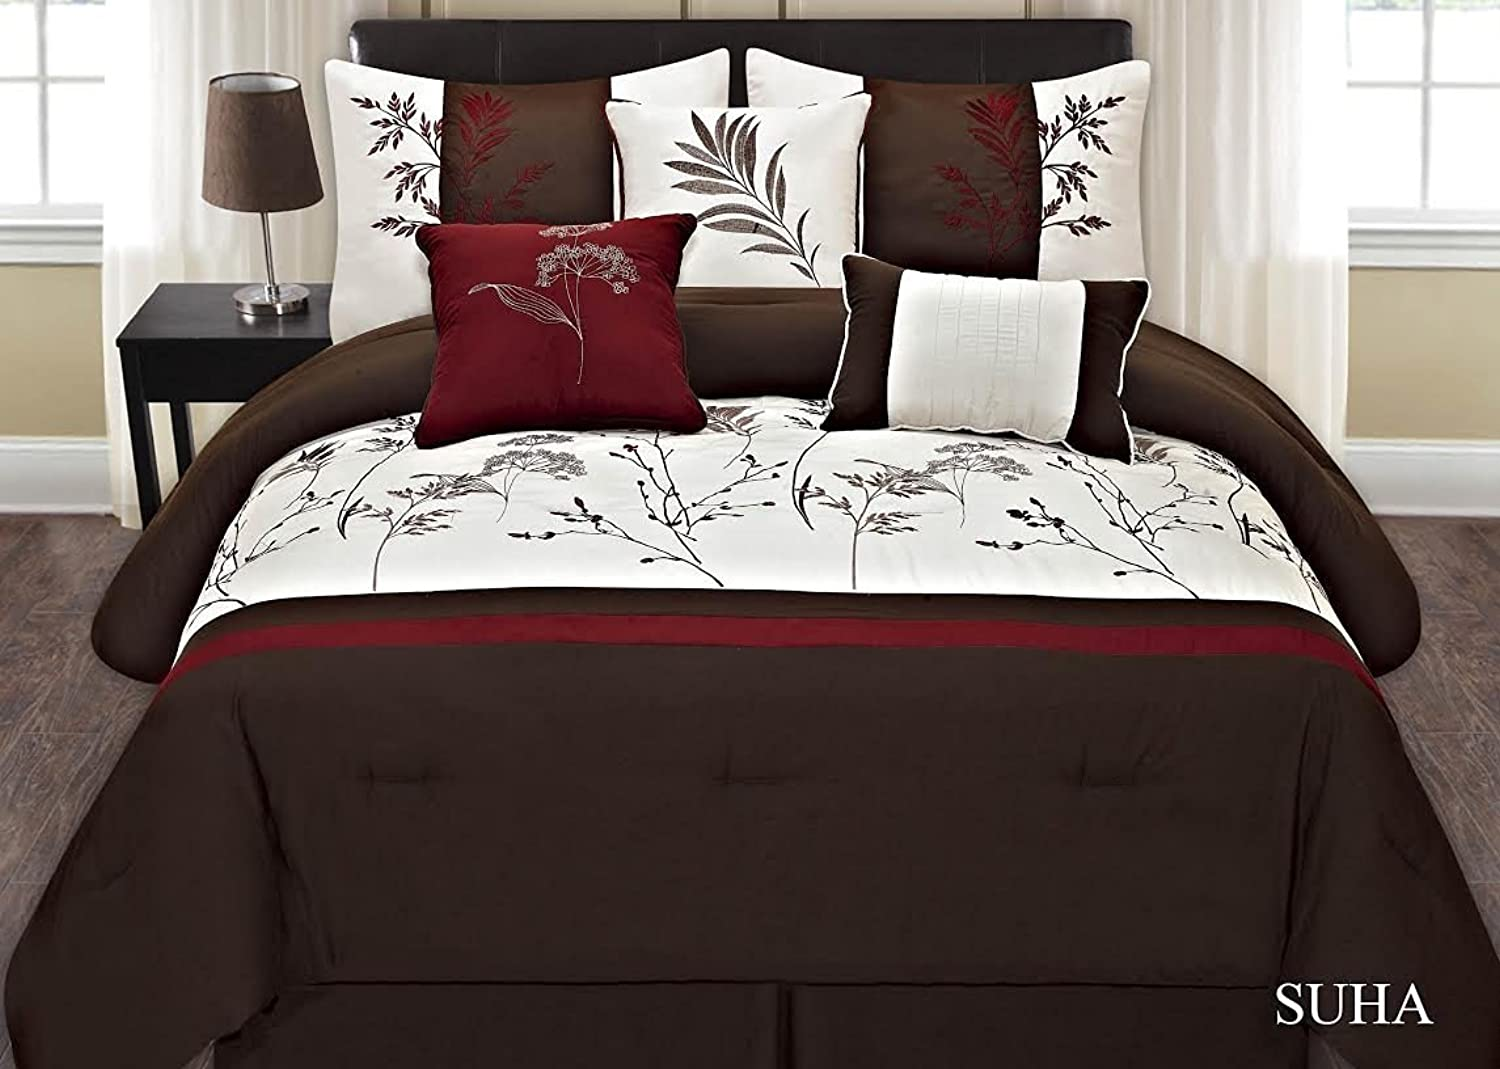 Fancy Collection 7-pc Embroidery Bedding Brown Off White Burgundy Comforter Set (Cal.king)